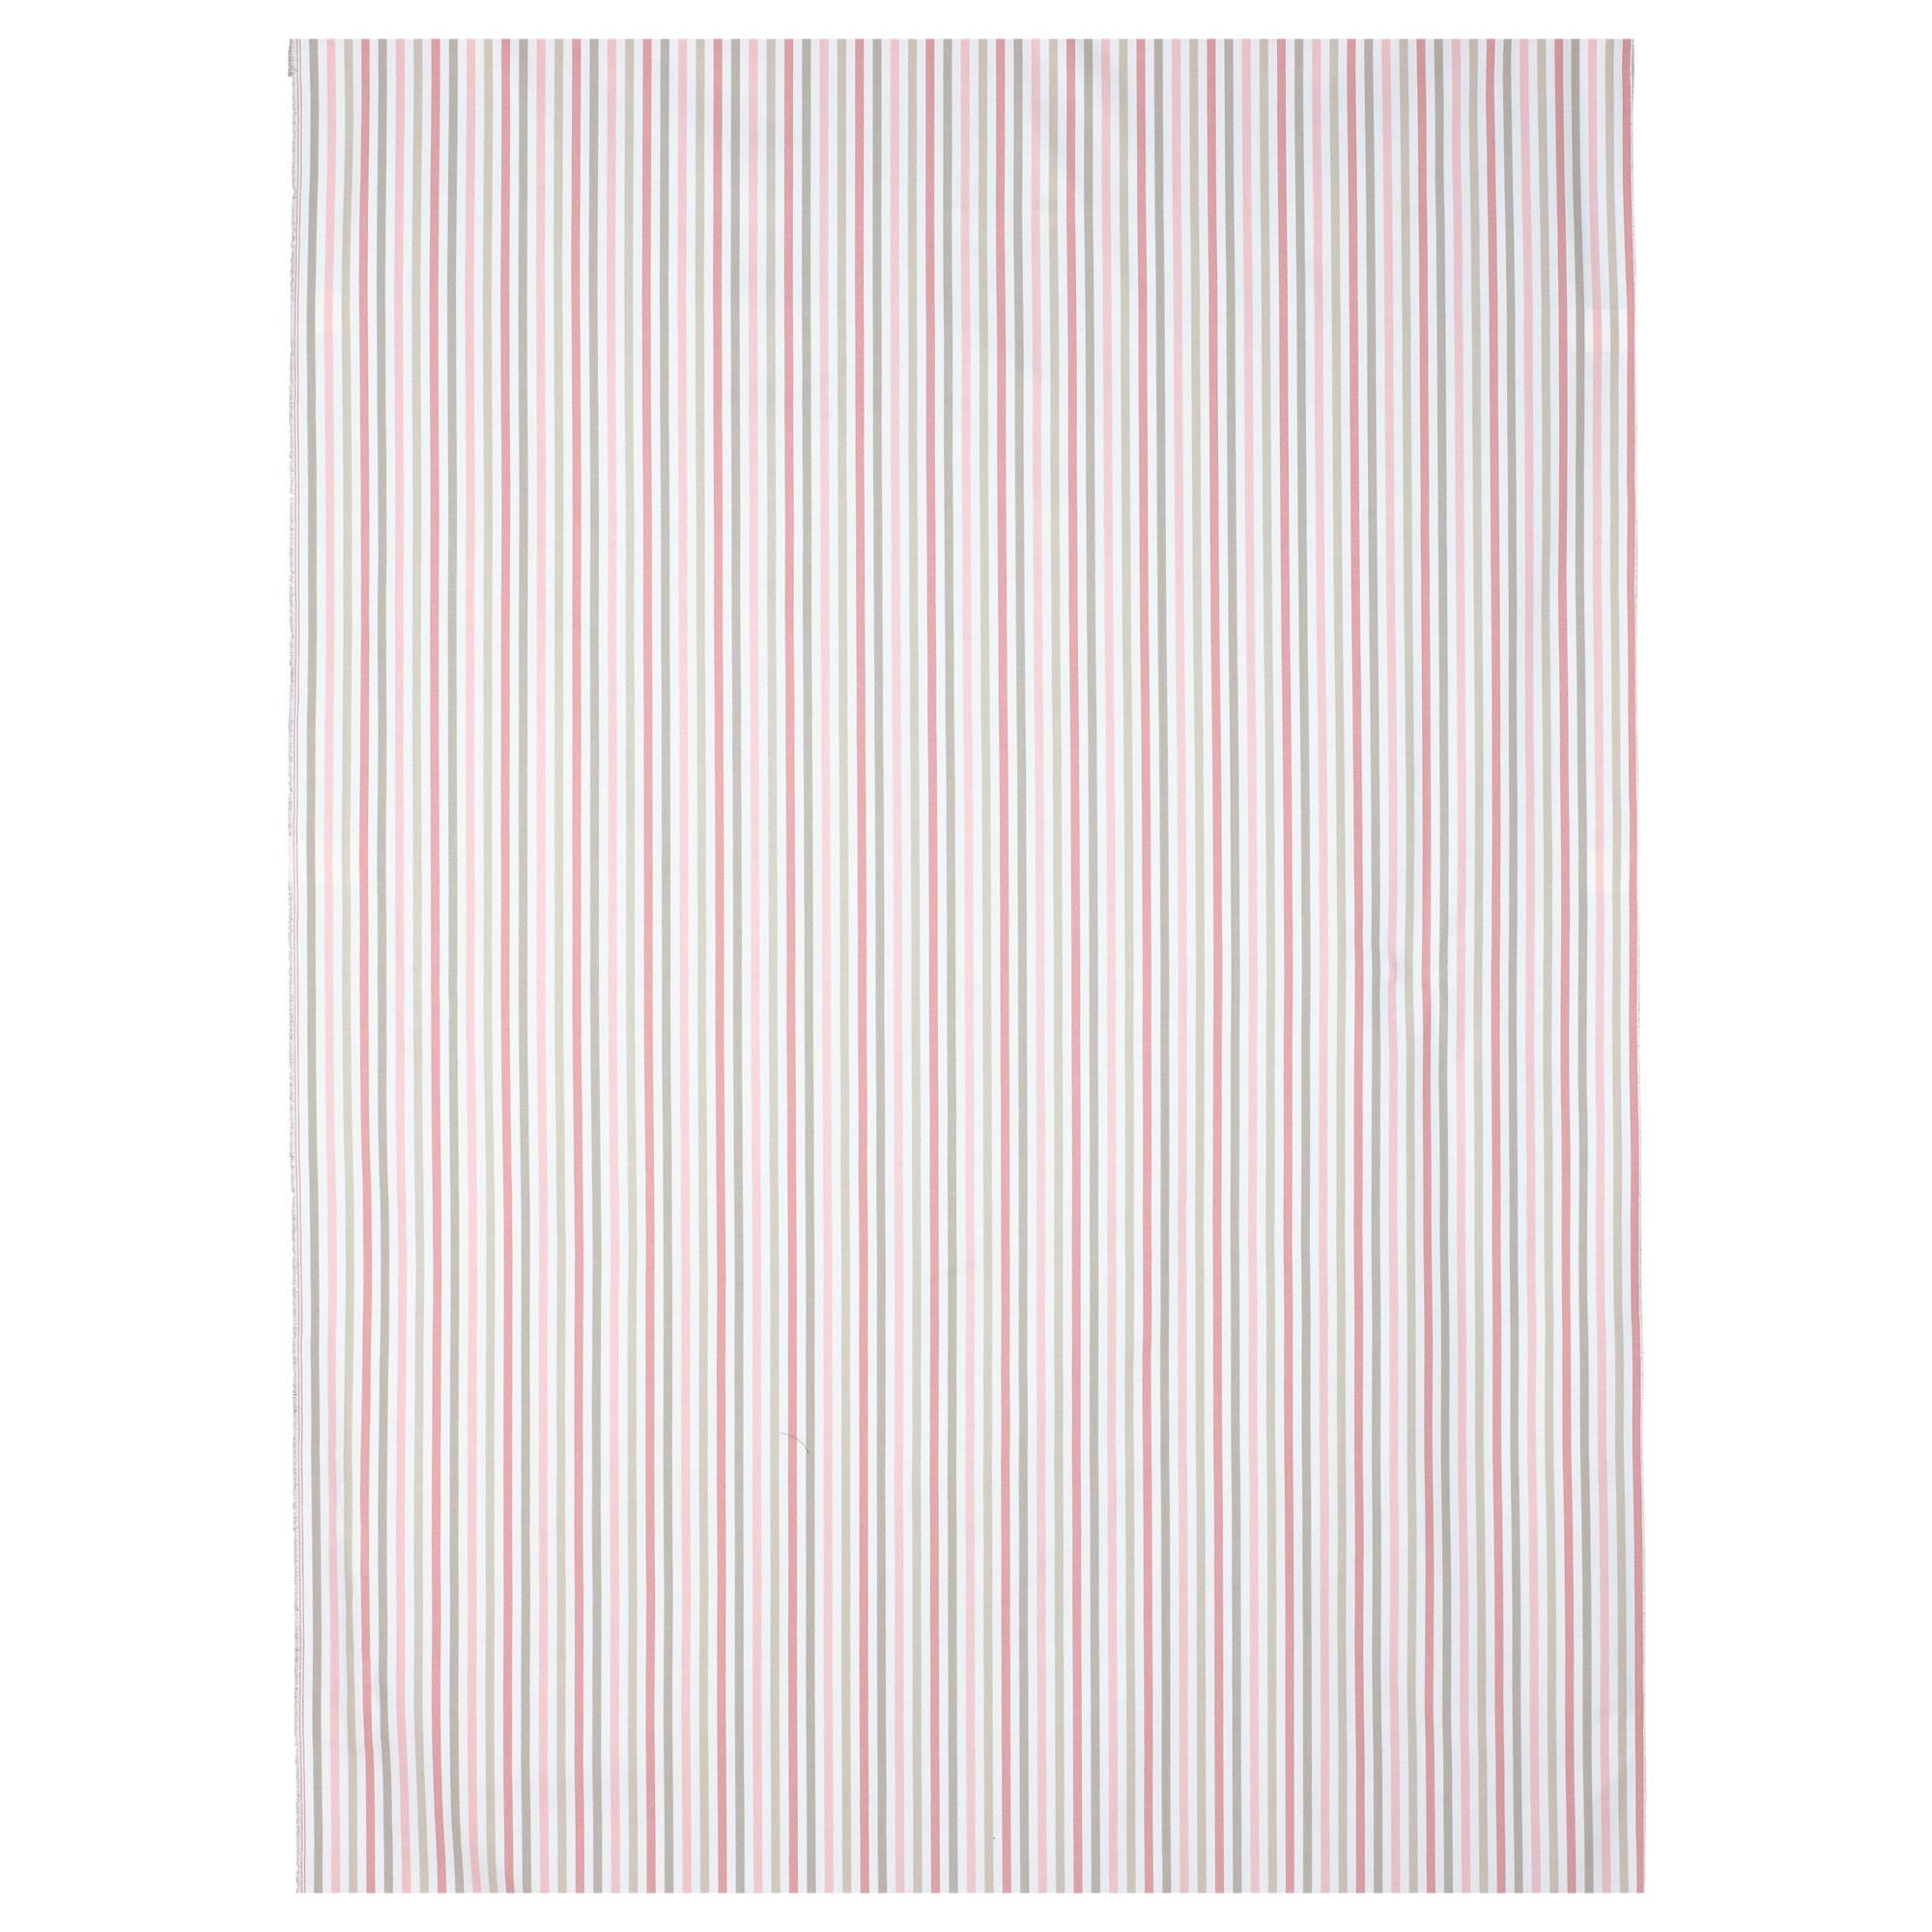 Ikea white curtains with red pattern - Emmie Rand Fabric Pink Weight 0 72 Oz Sq Ft Width 59